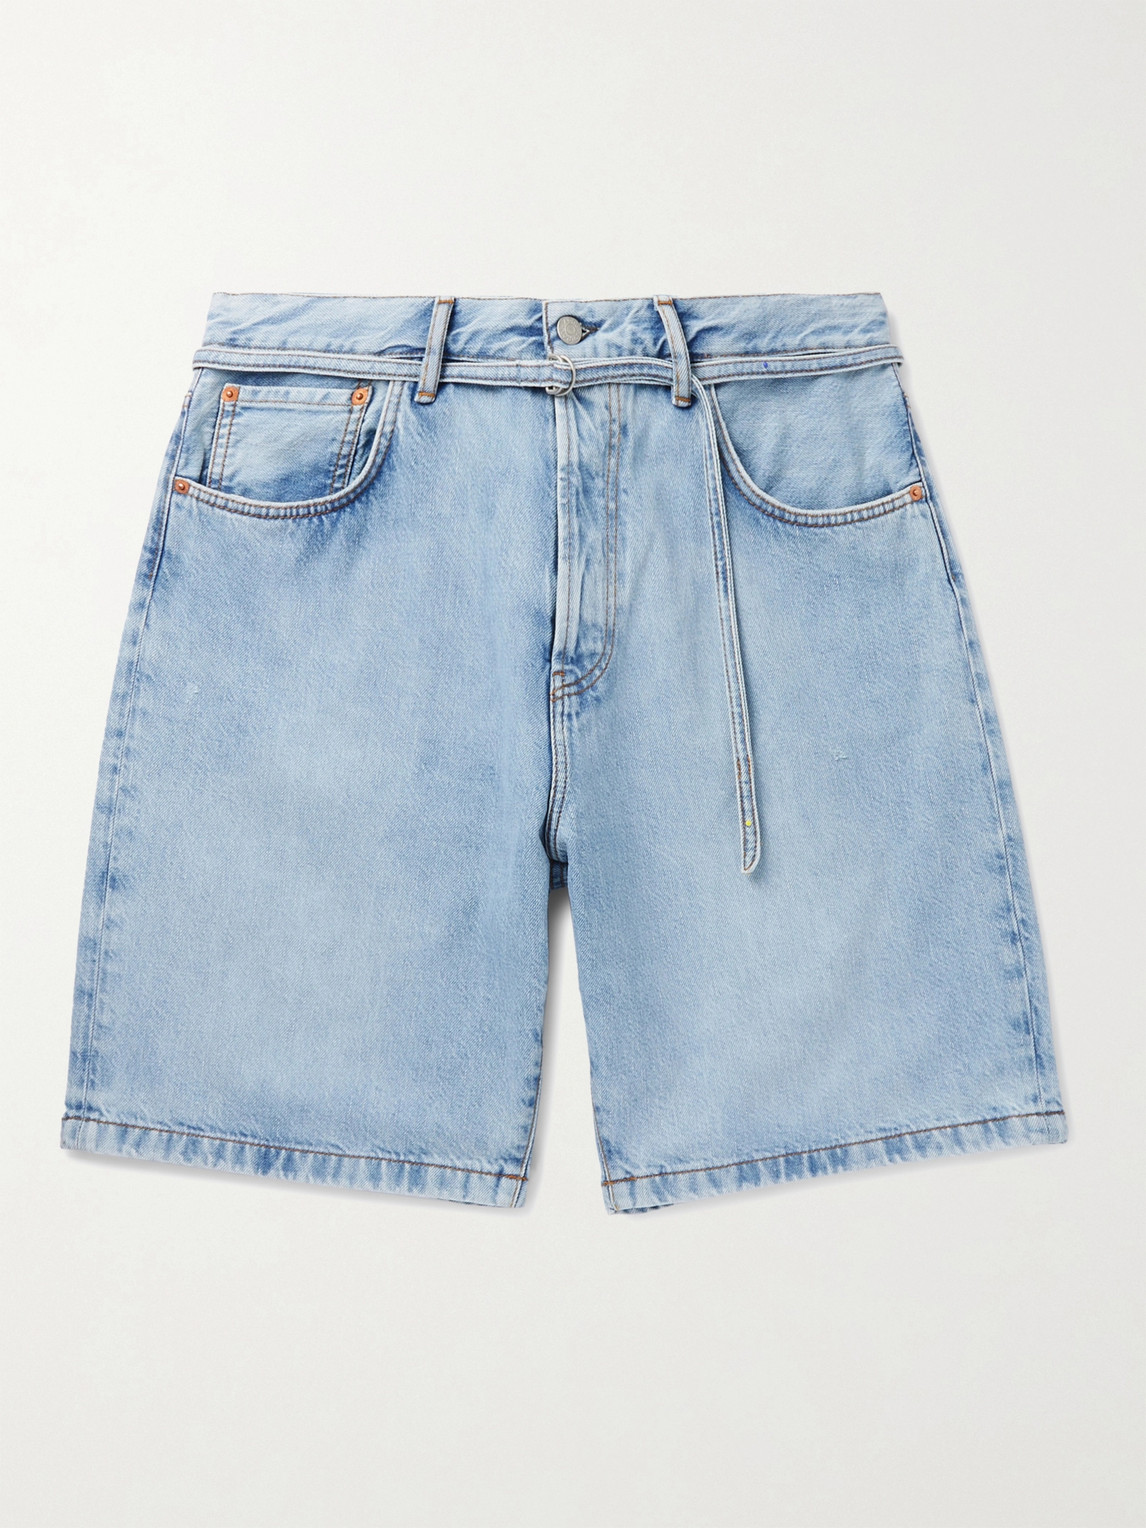 Acne Studios ROLAND BELTED DENIM SHORTS